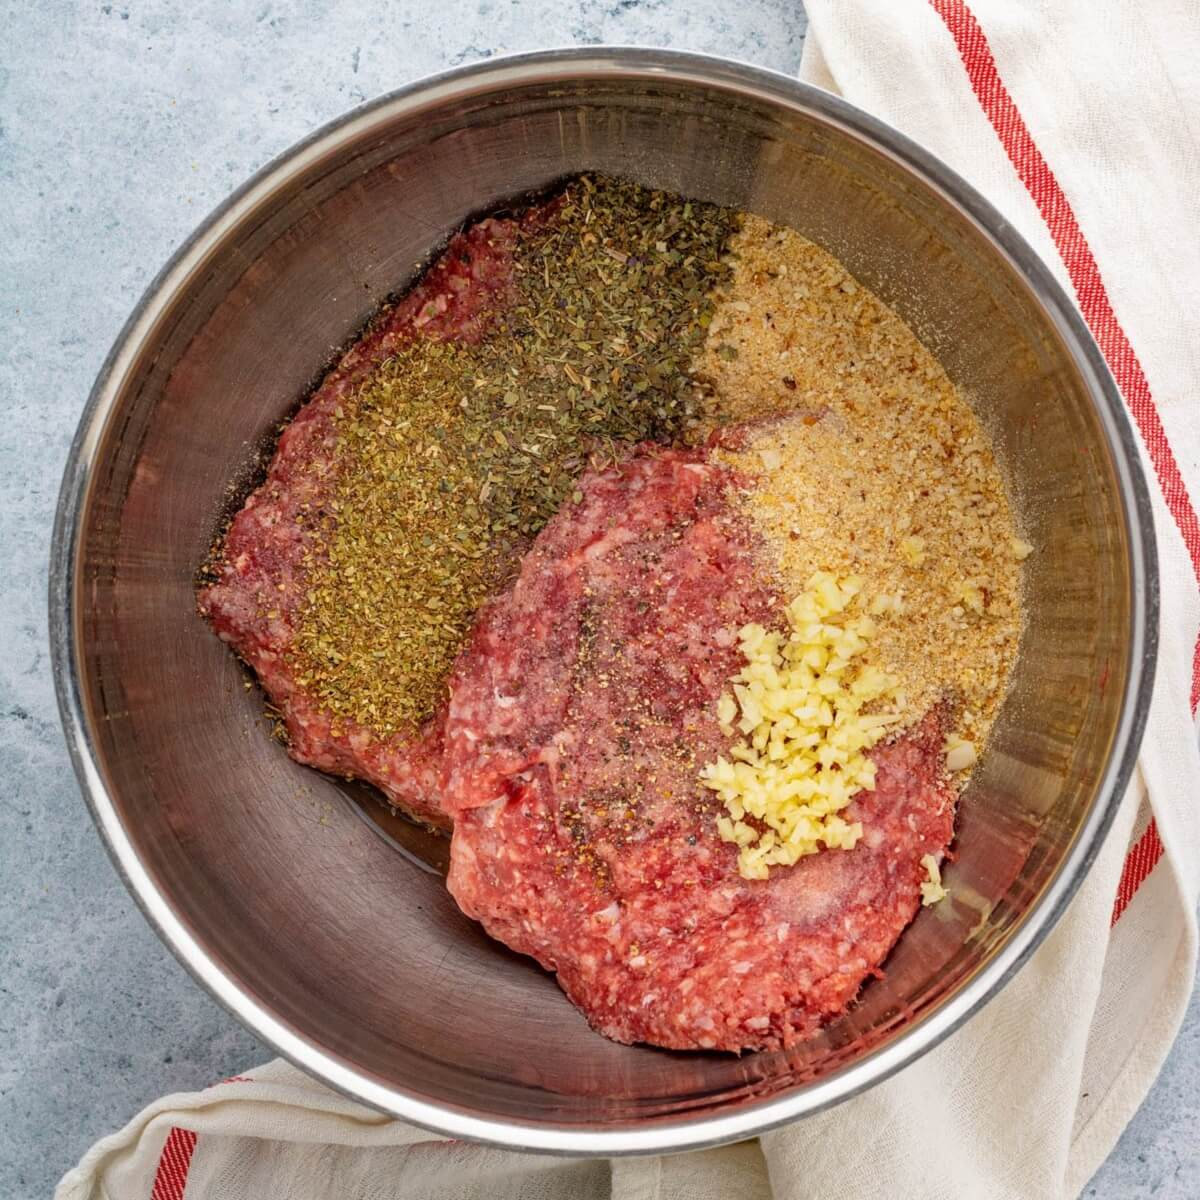 Ingredients required to make Oven Baked Meatballs.